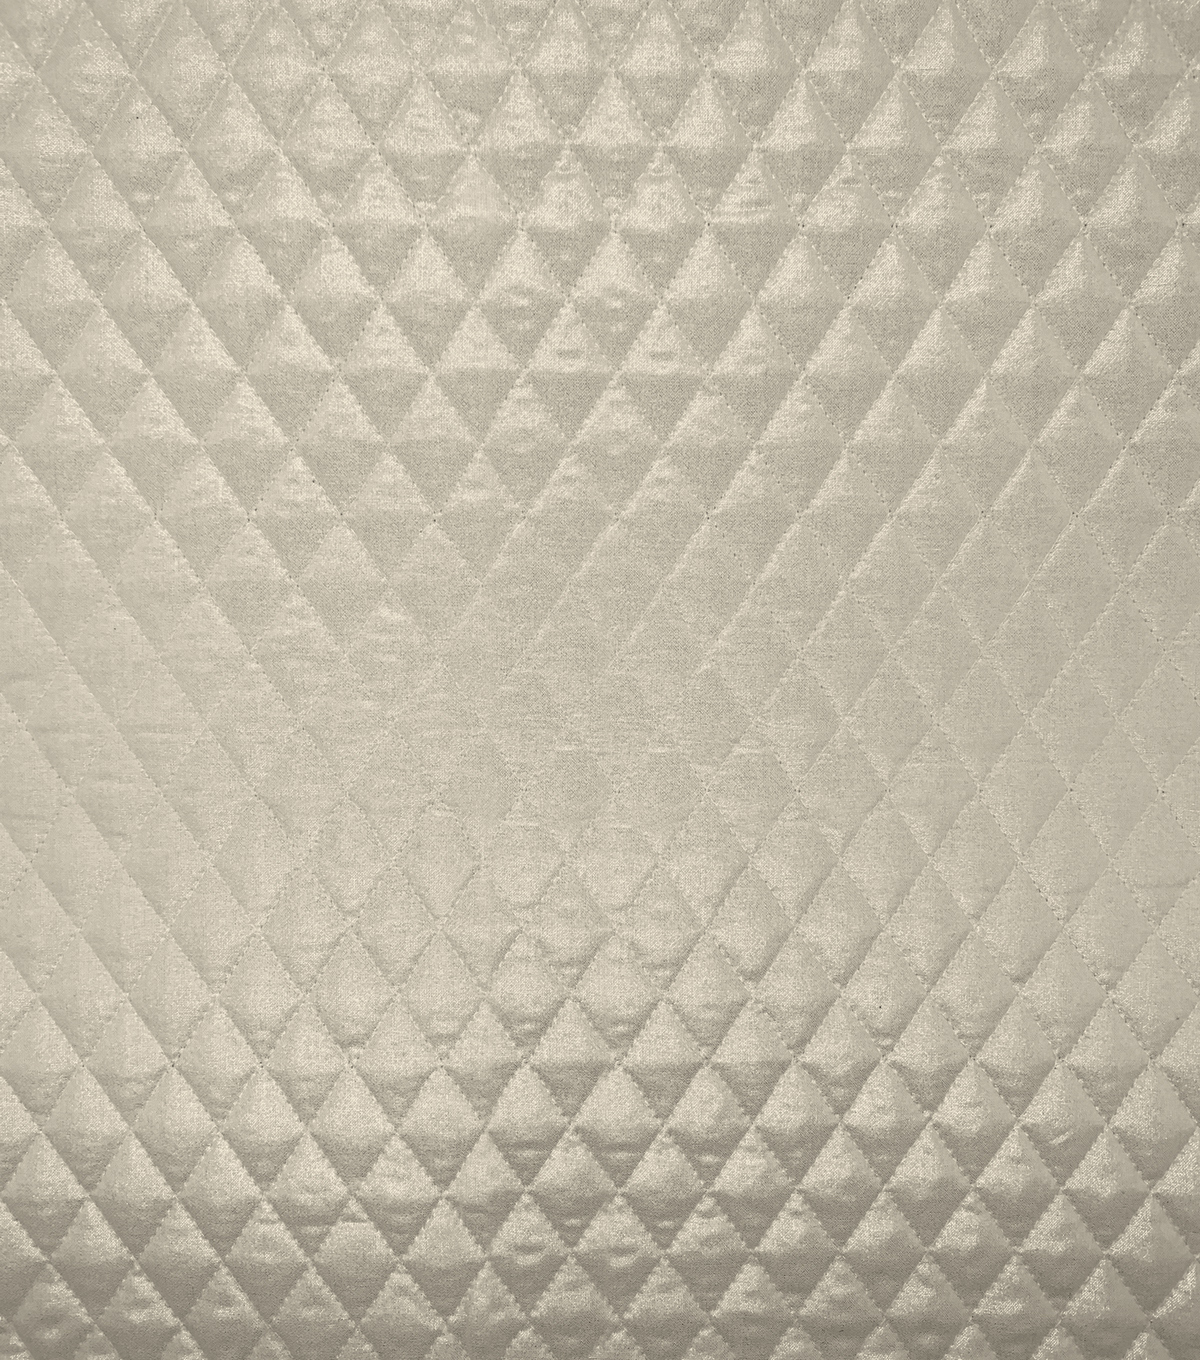 Double Faced Pre-Quilted Cotton Fabric -Diamond Solids, Foil Gold